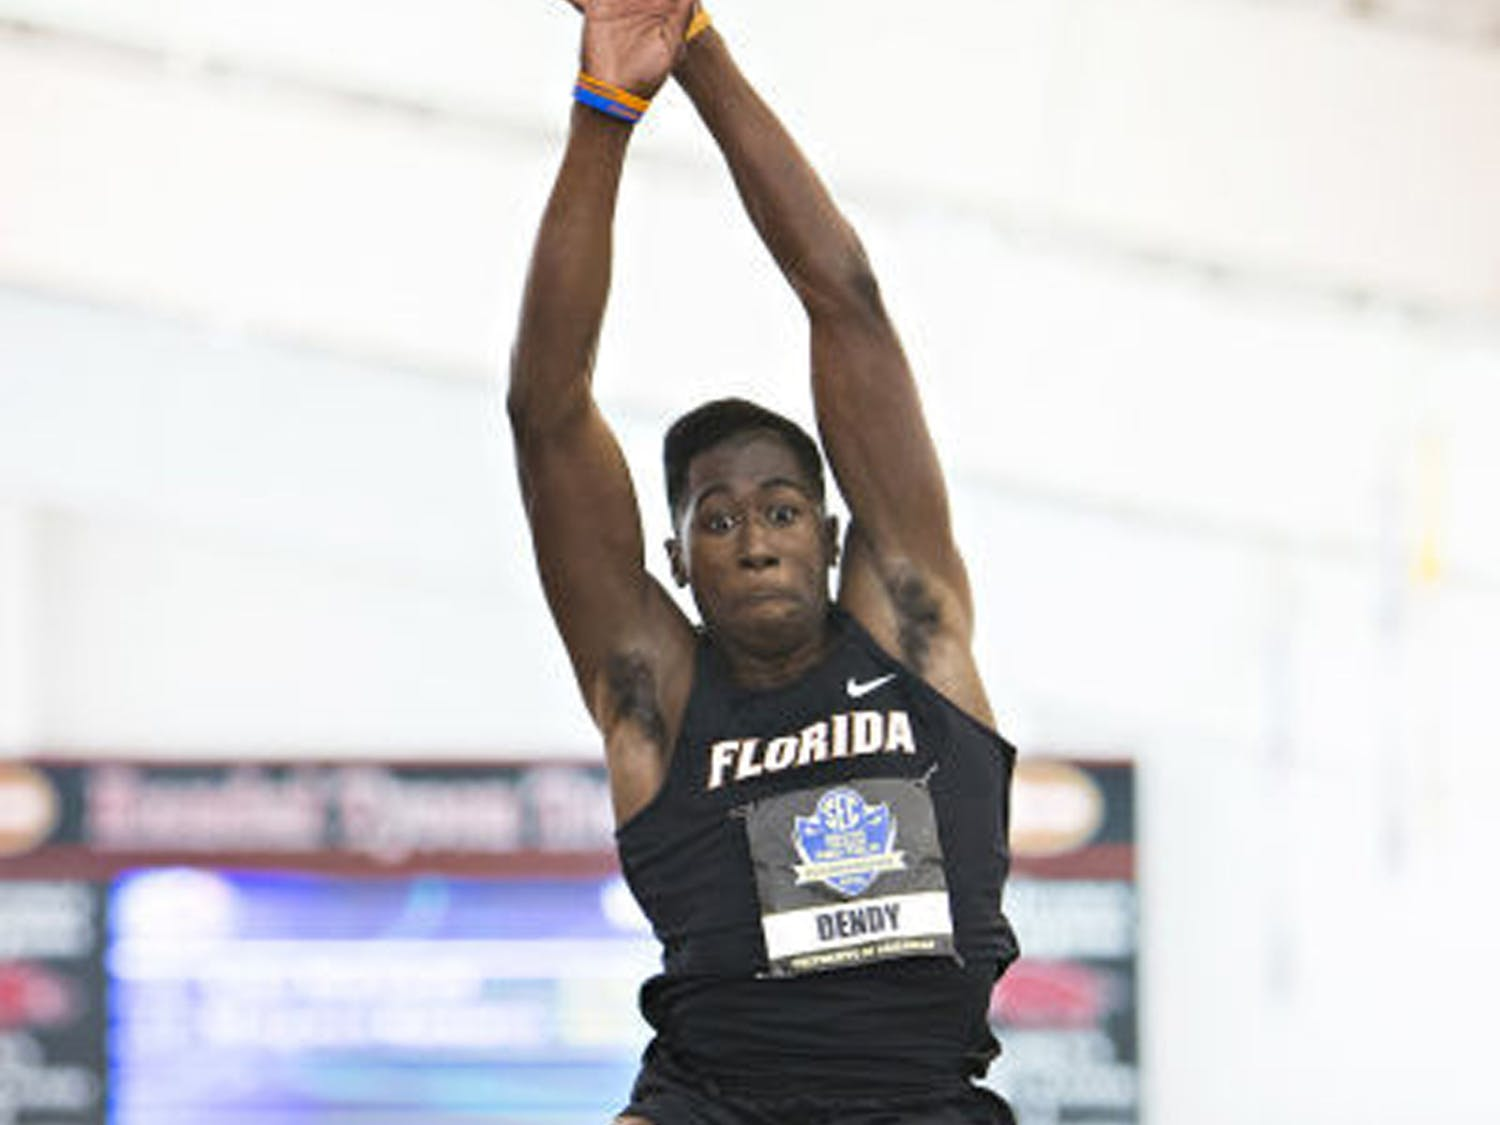 Marquis Dendy competes at the Southeastern Conference Indoor Championships on Feb. 23, 2013, in Fayetteville, Ark.